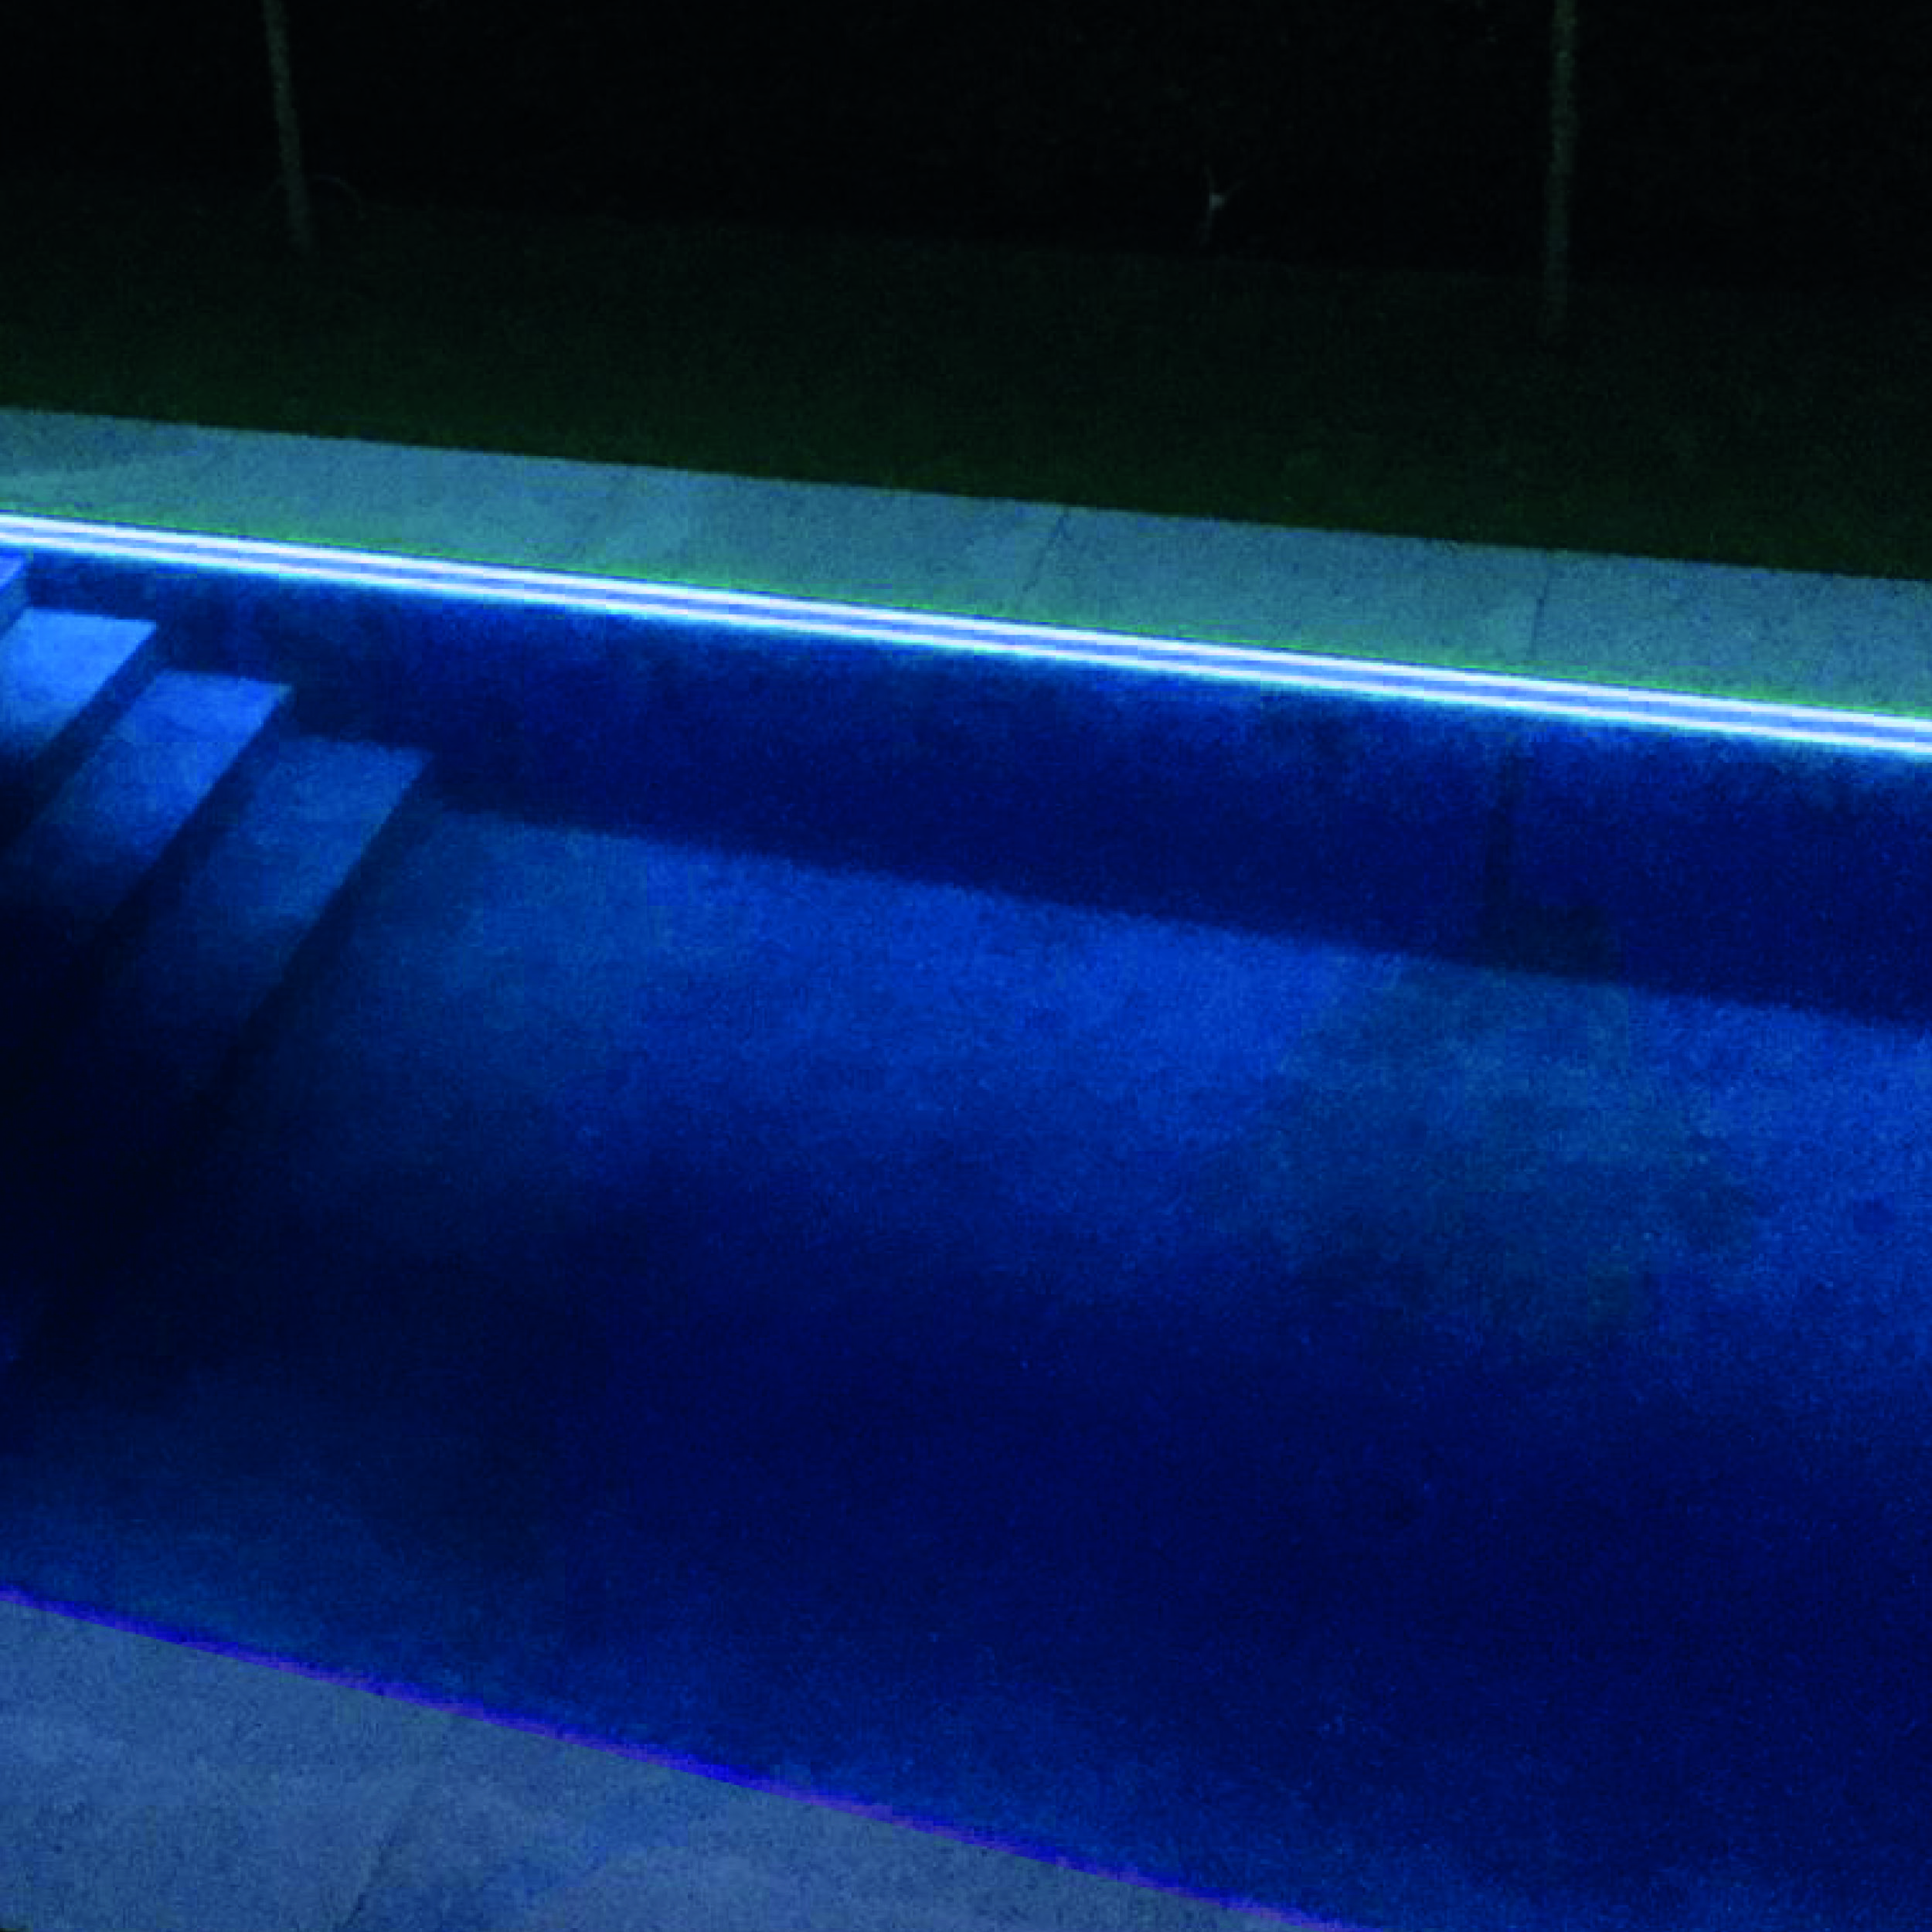 Eclairage Led Piscine Kit Ruban Led 30 Mètres Piscine Rgb Ip68 Eclairage Led